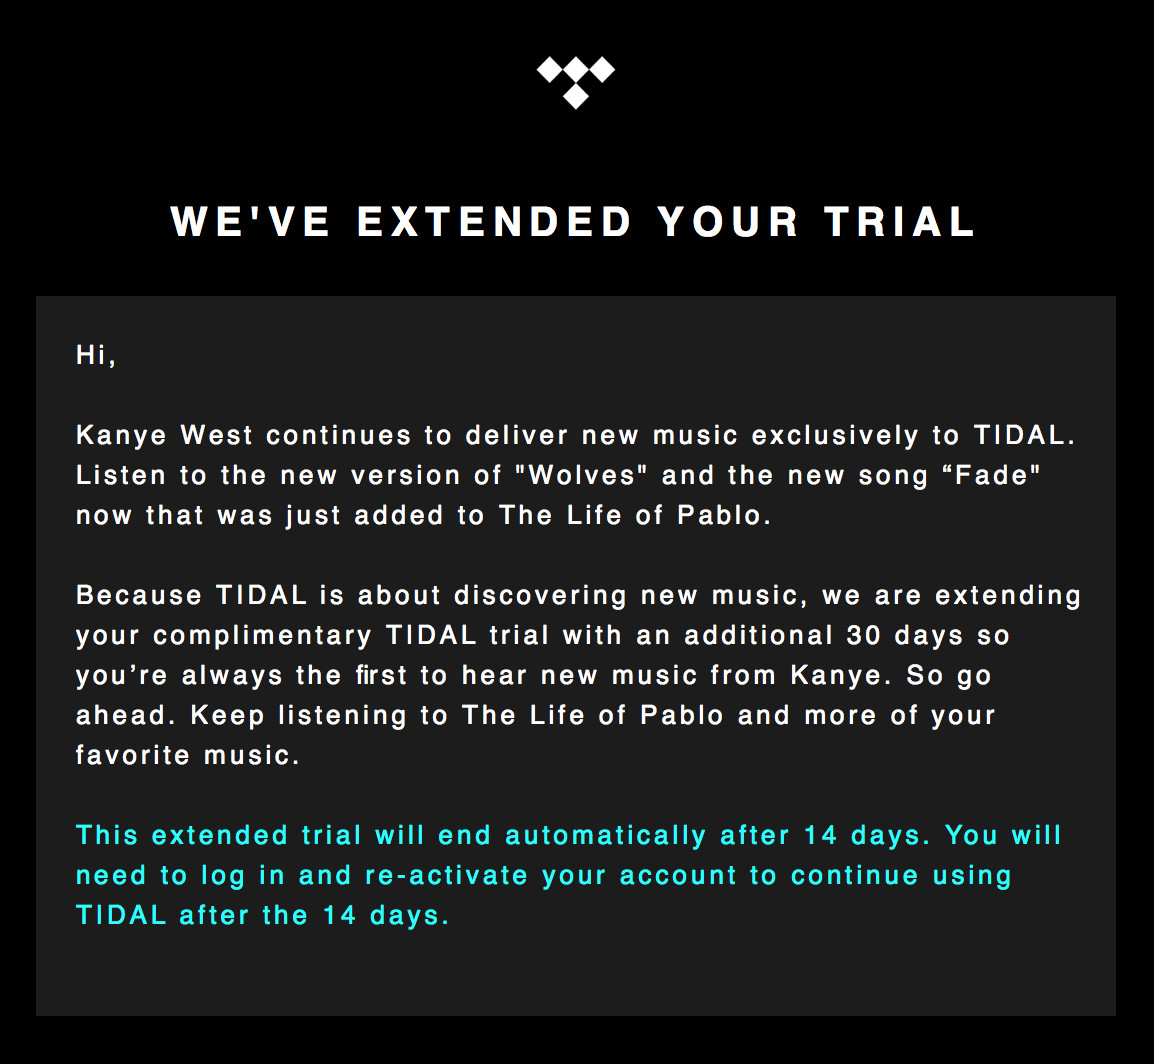 Tidal is extending free trials by a month to let users hear